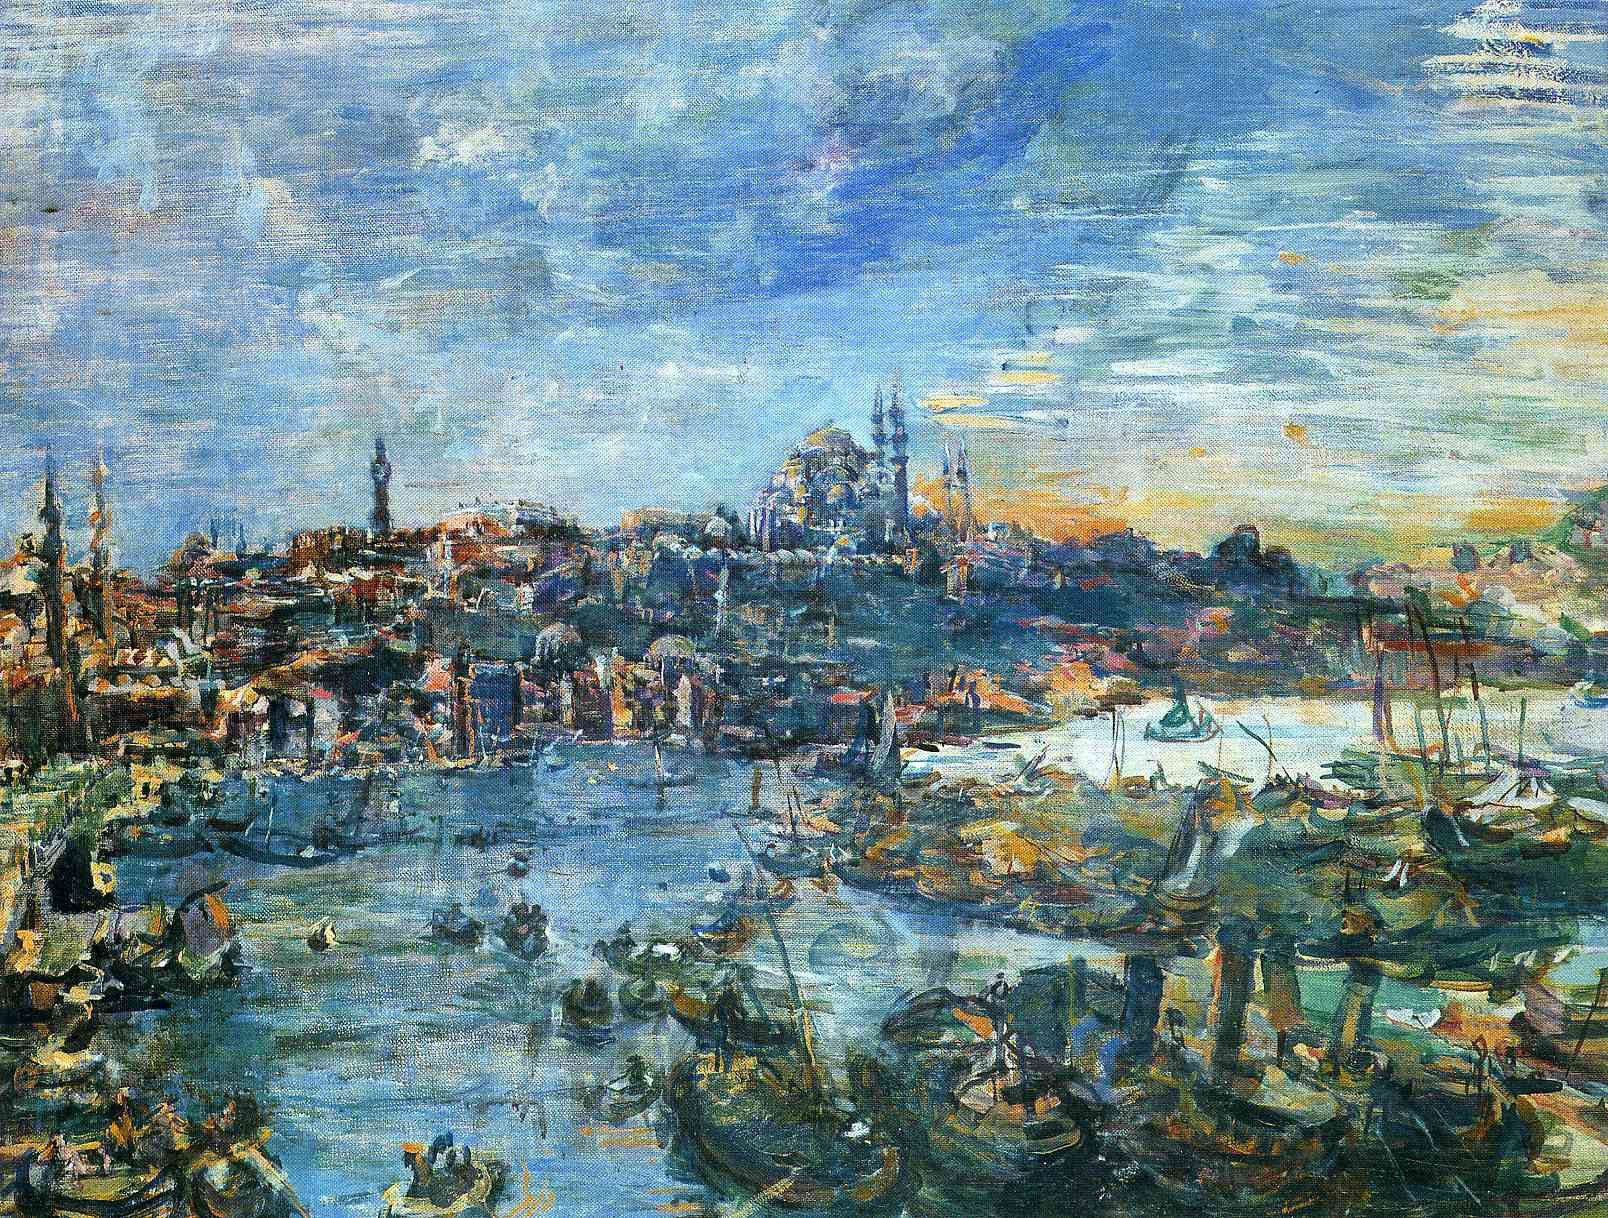 thumb-Oskar-Kokoschka-View-of-Constantinople-.-1929--Oskar-Kokoschka-.-View-of-Constantinople-.-1929.jpg